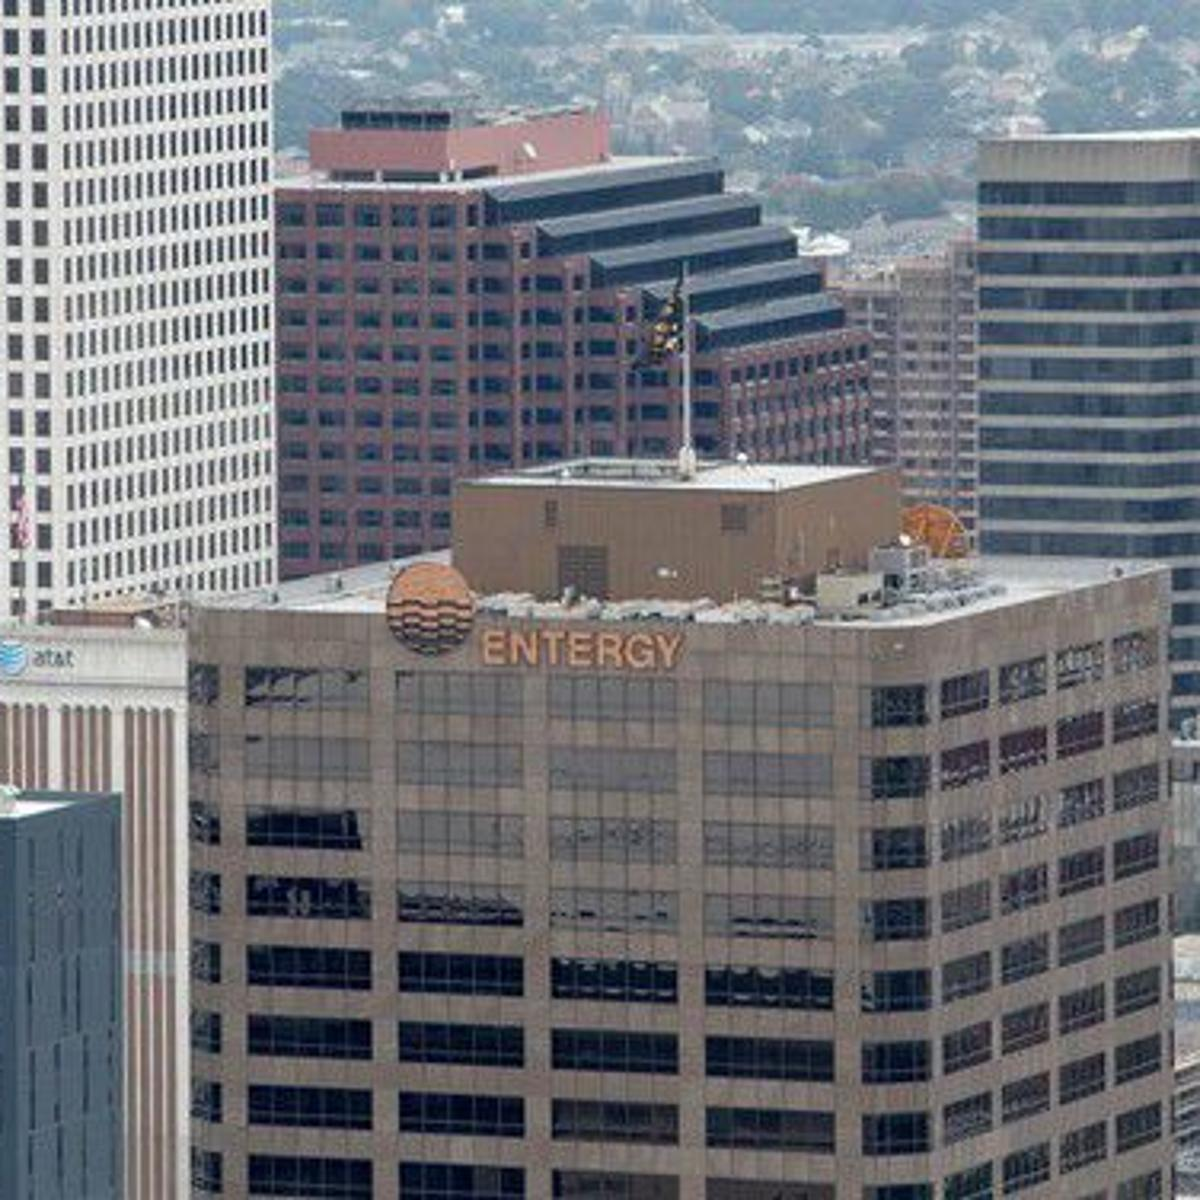 Does New Orleans need its own power plant? Council to